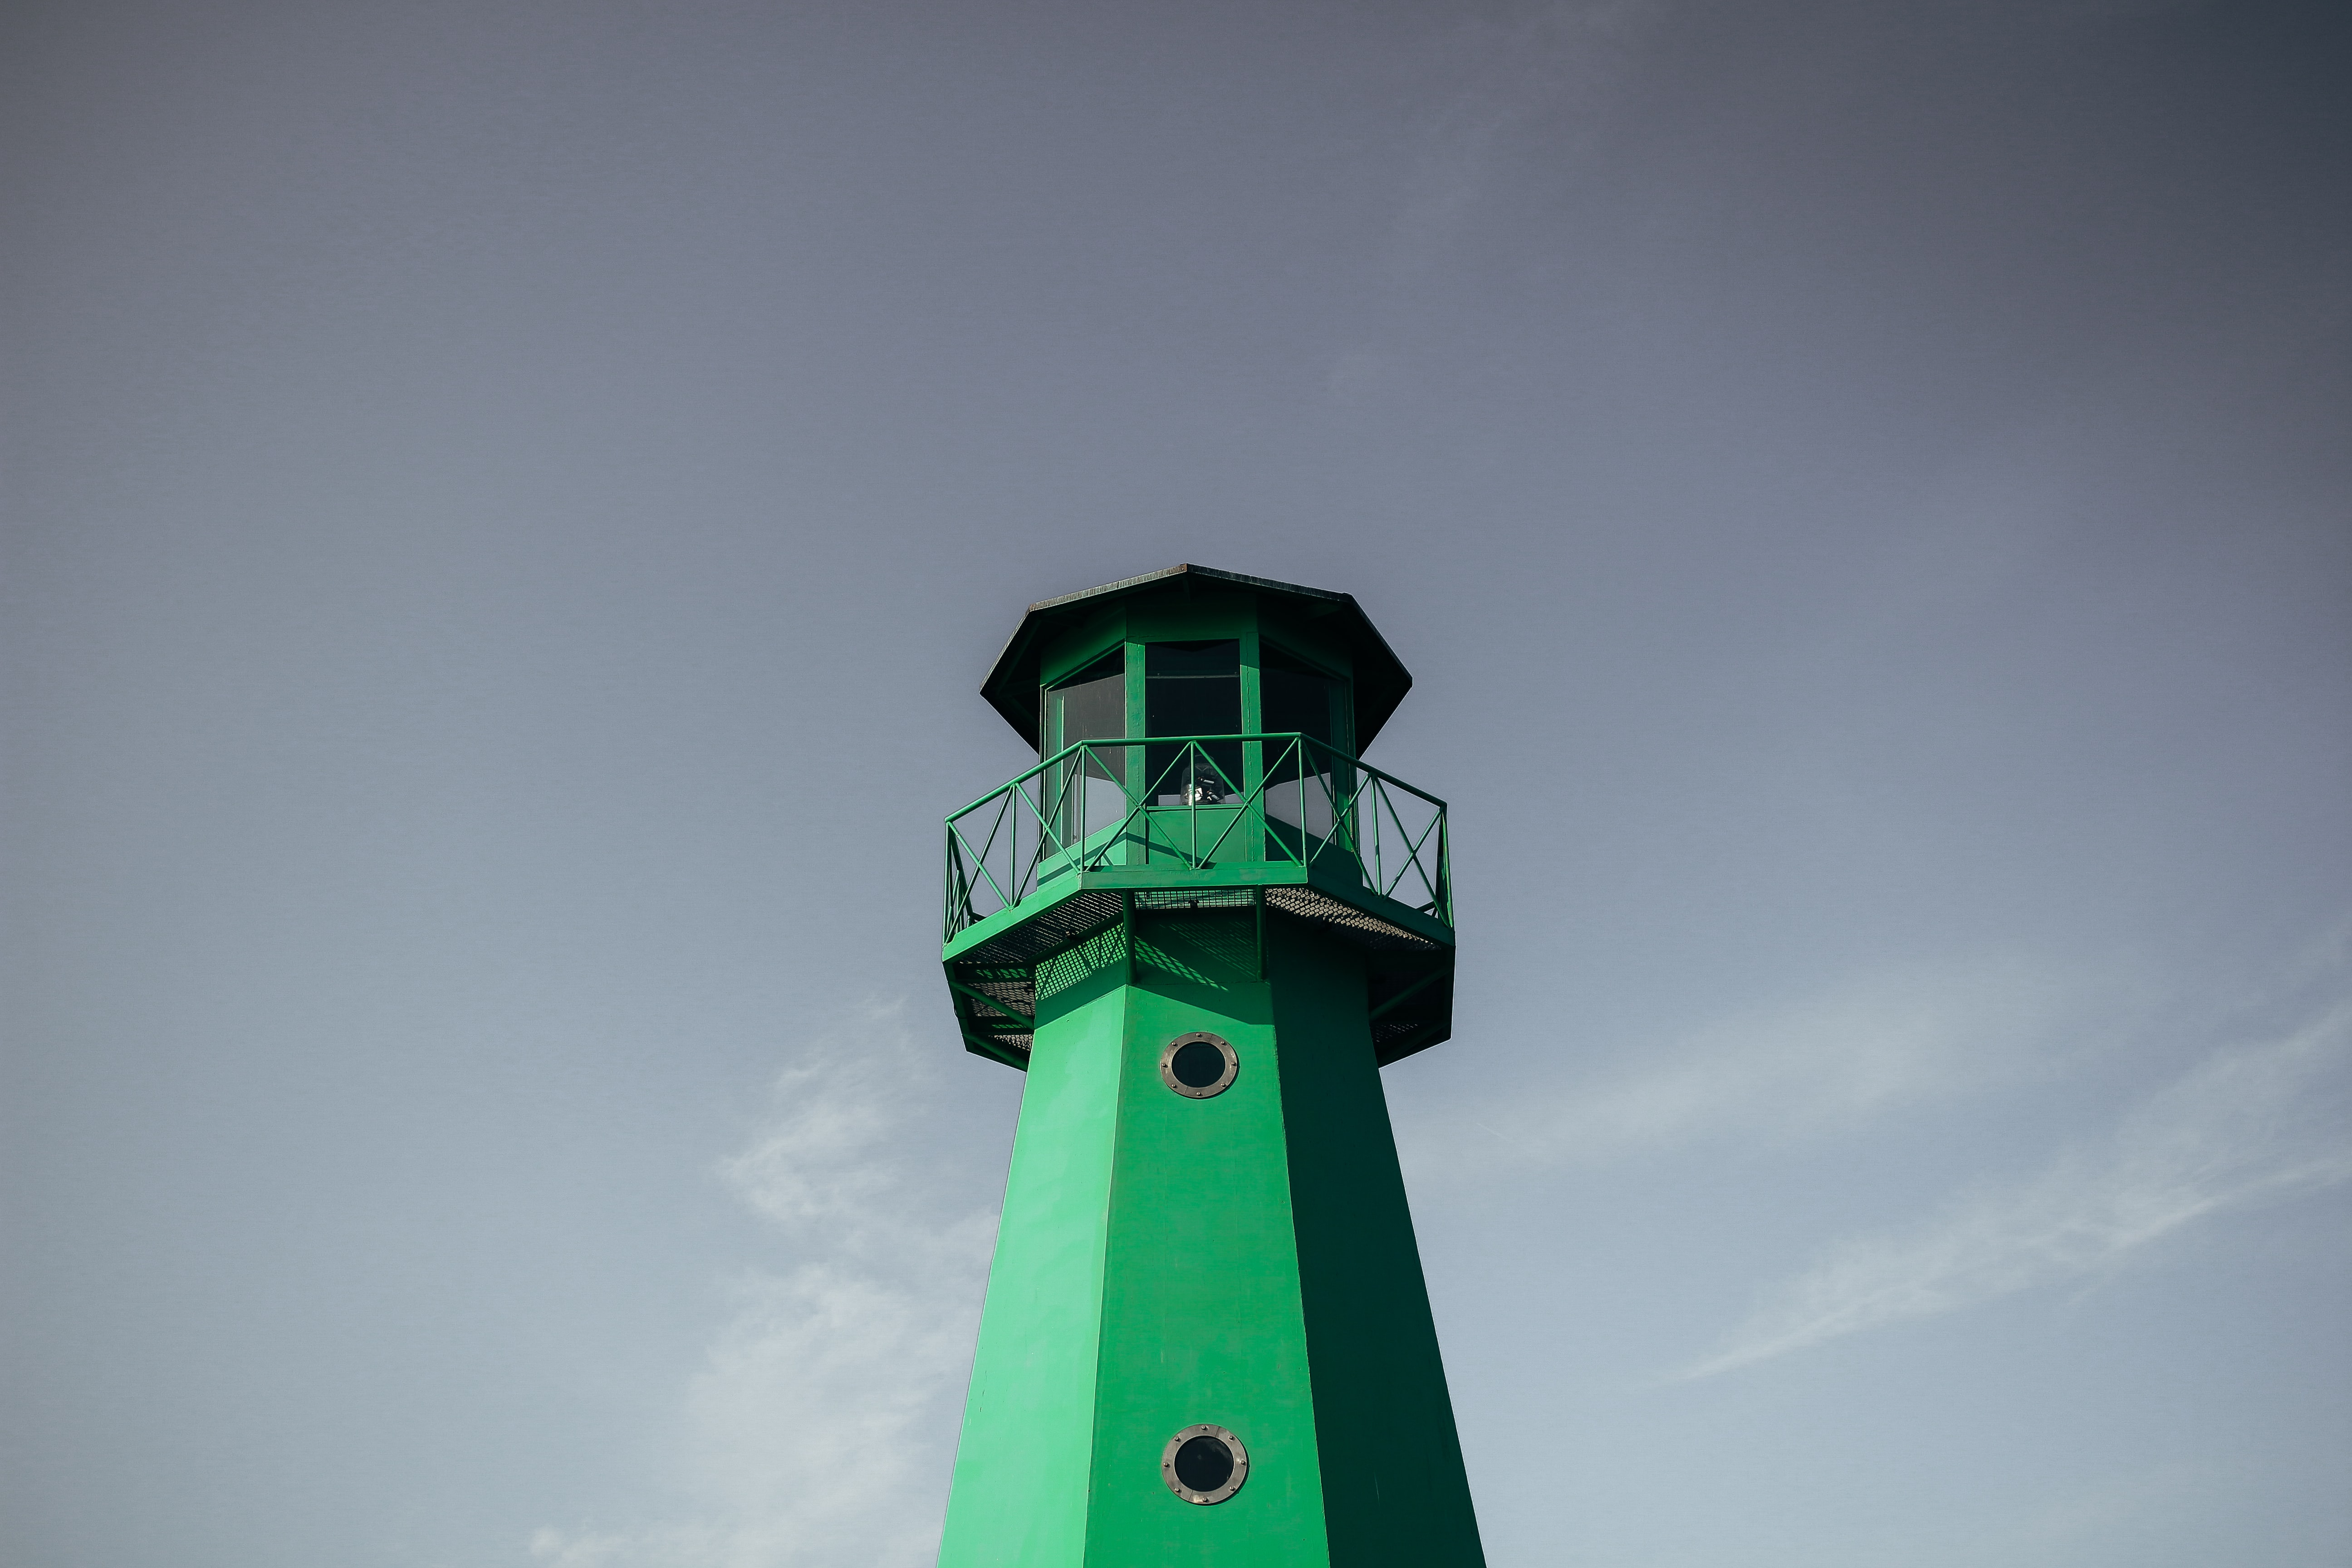 green lighthouse under cloudy sky during daytime